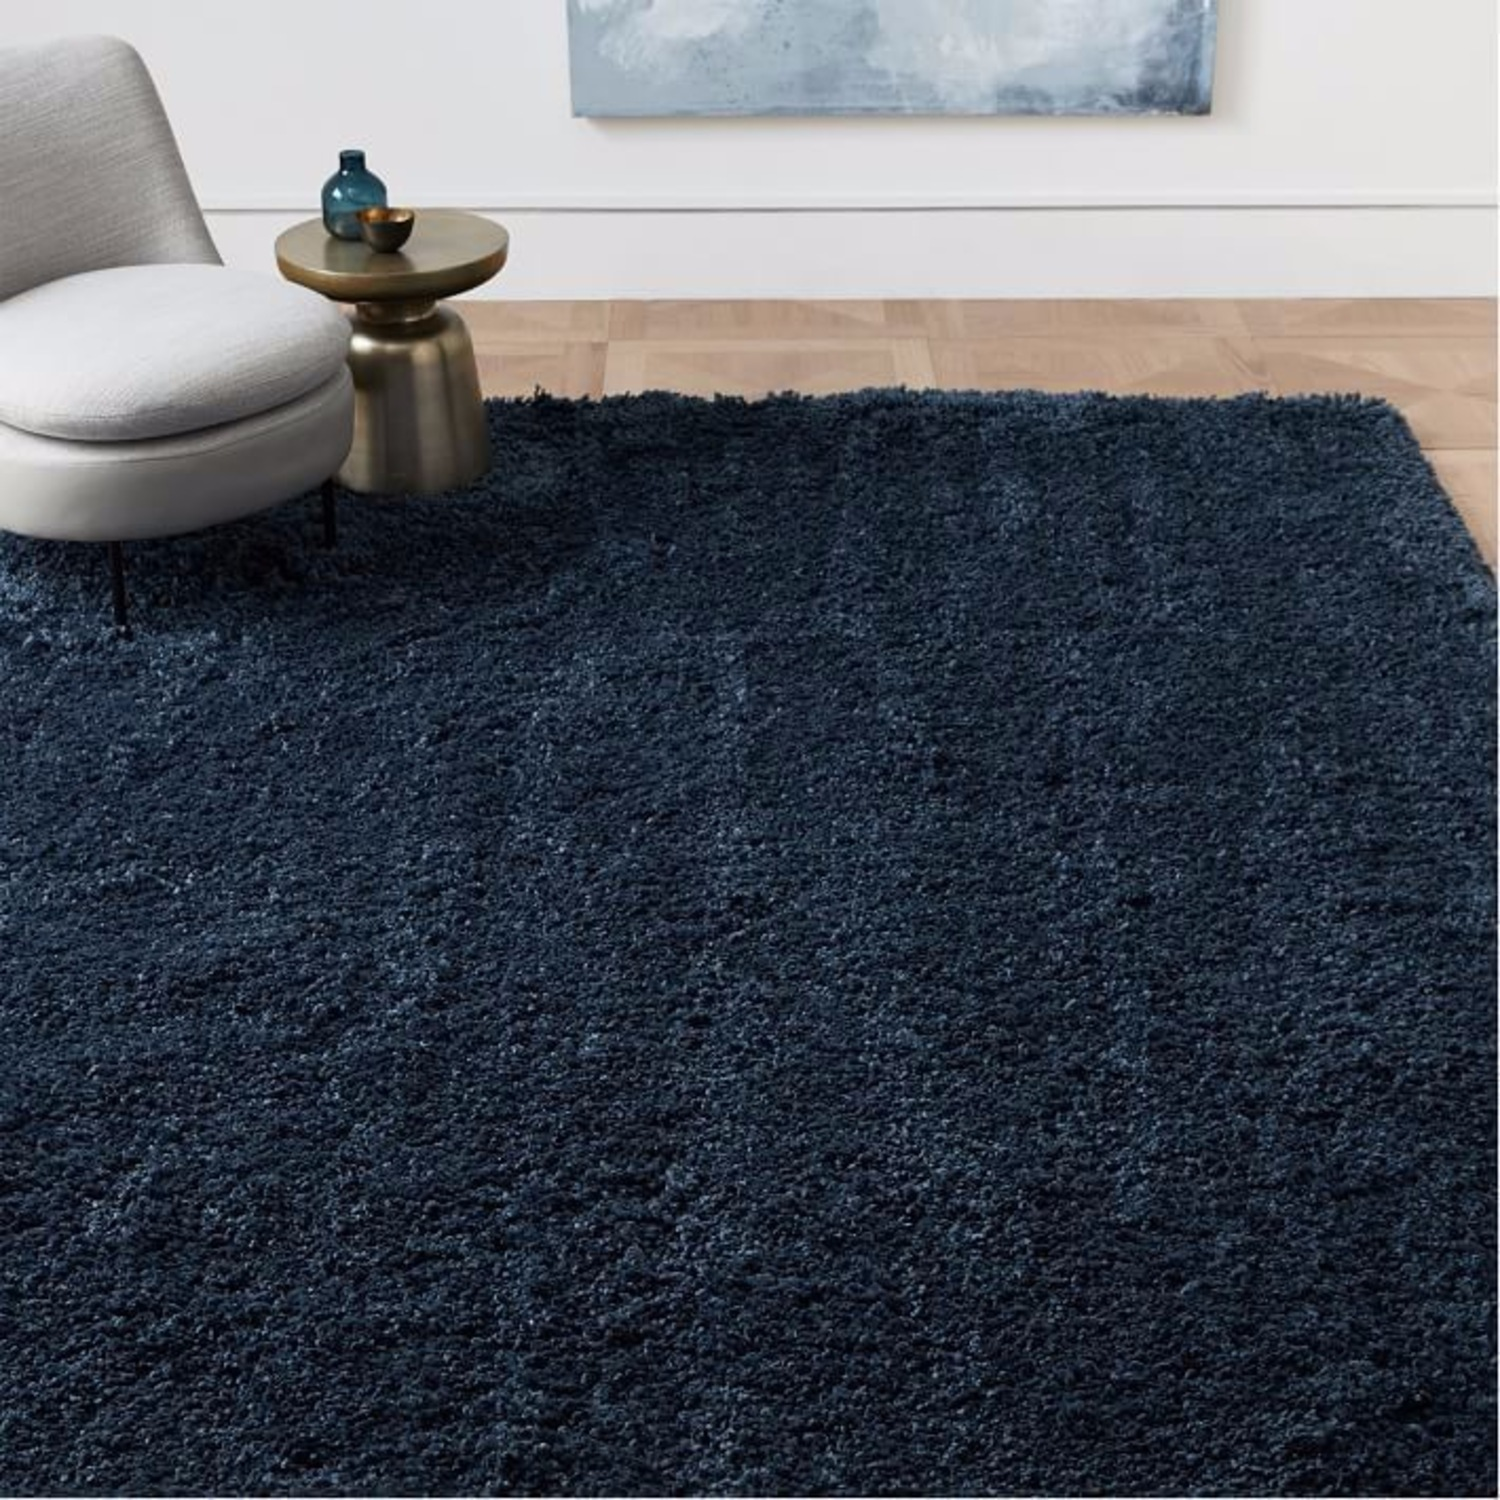 West Elm Cozy Plush Rug - image-1